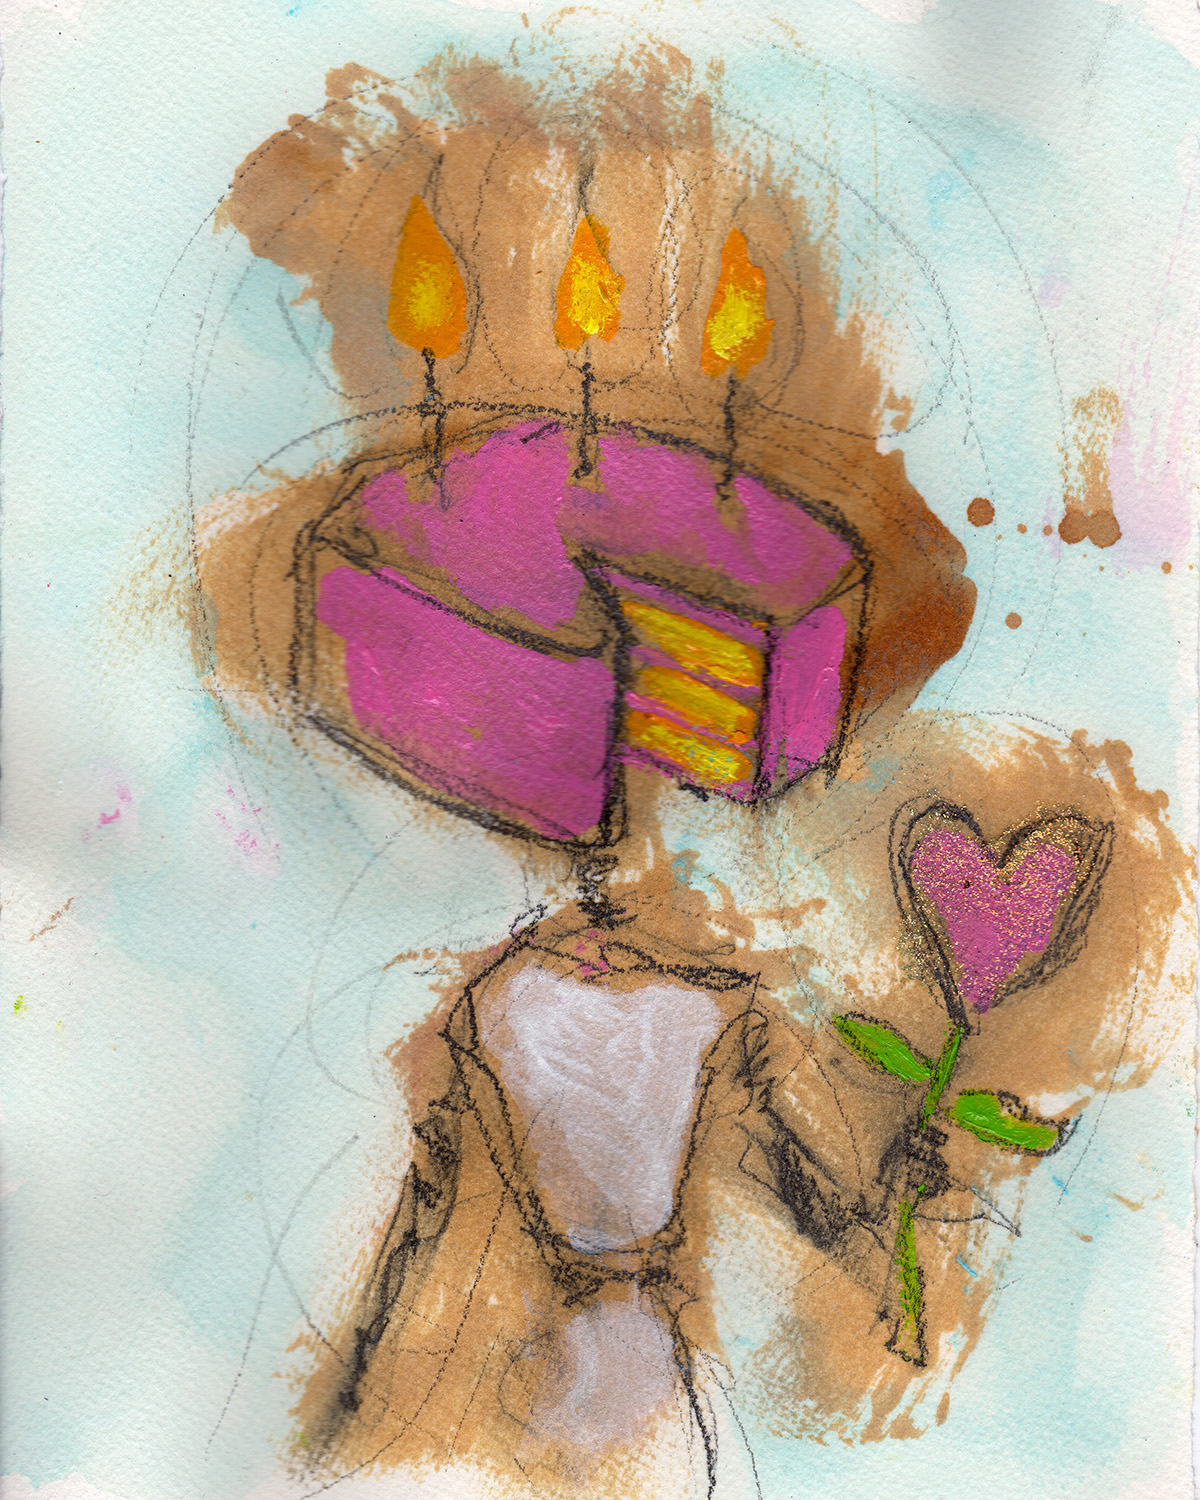 "2/26/13 - Birthdaybot and the Love Flower. My mother thinks most of what I make is pretty strange. She's getting this in the mail anyway. Happy birthday mom! Love ya! 8"" x 10"" Acrylic paint, shellac, marker, pencil, glitter on watercolor paper. This one isn't for sale."